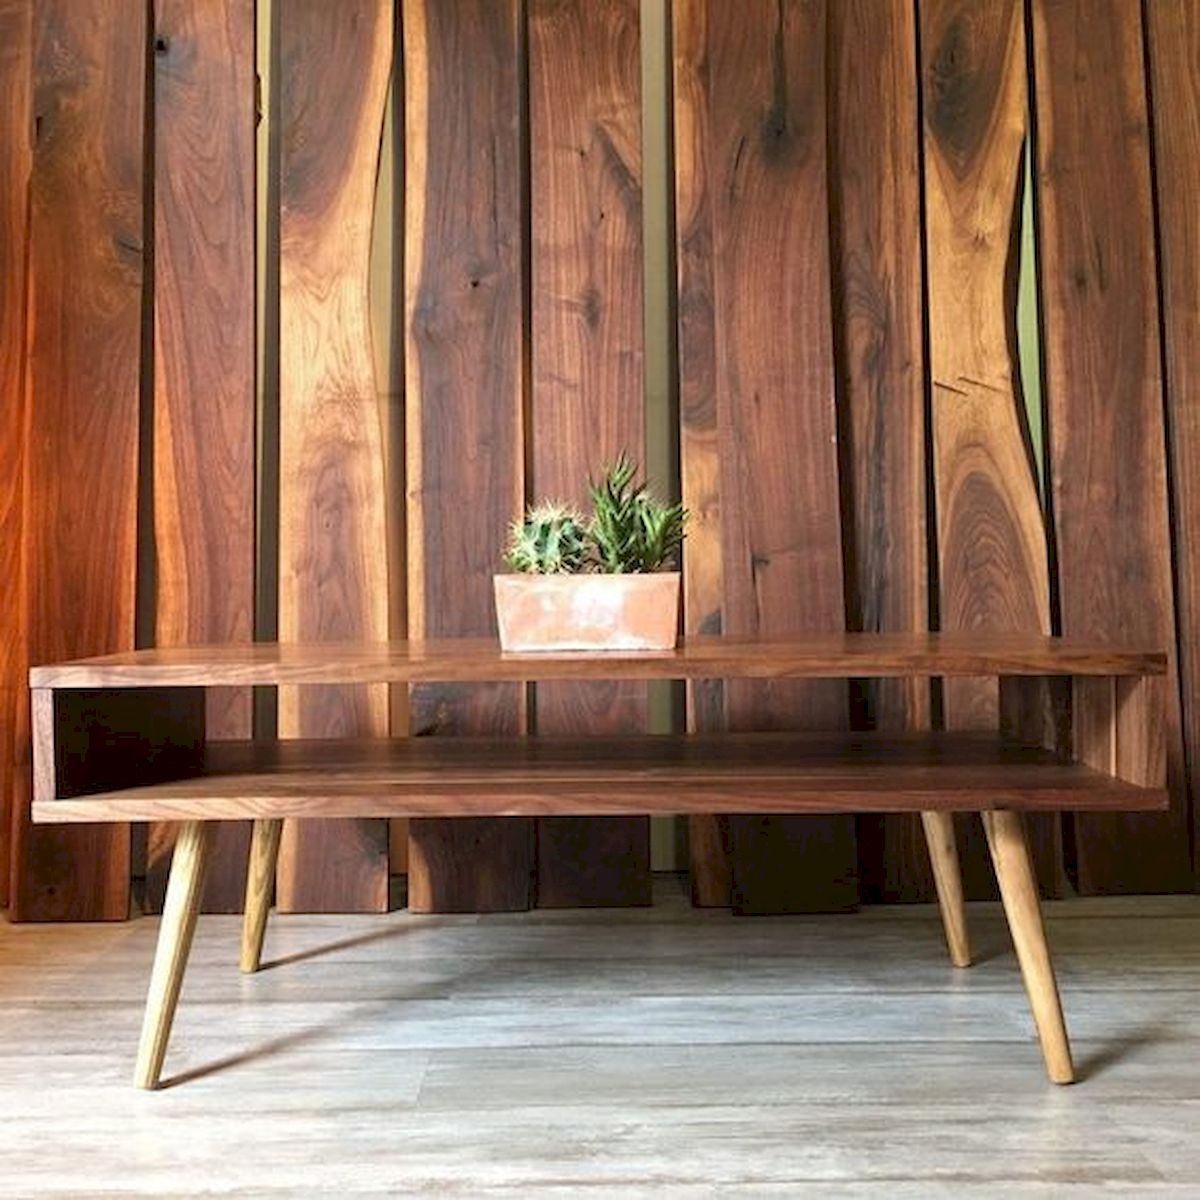 45 Easy and Cheap DIY Wood Furniture Ideas for Small House (34)